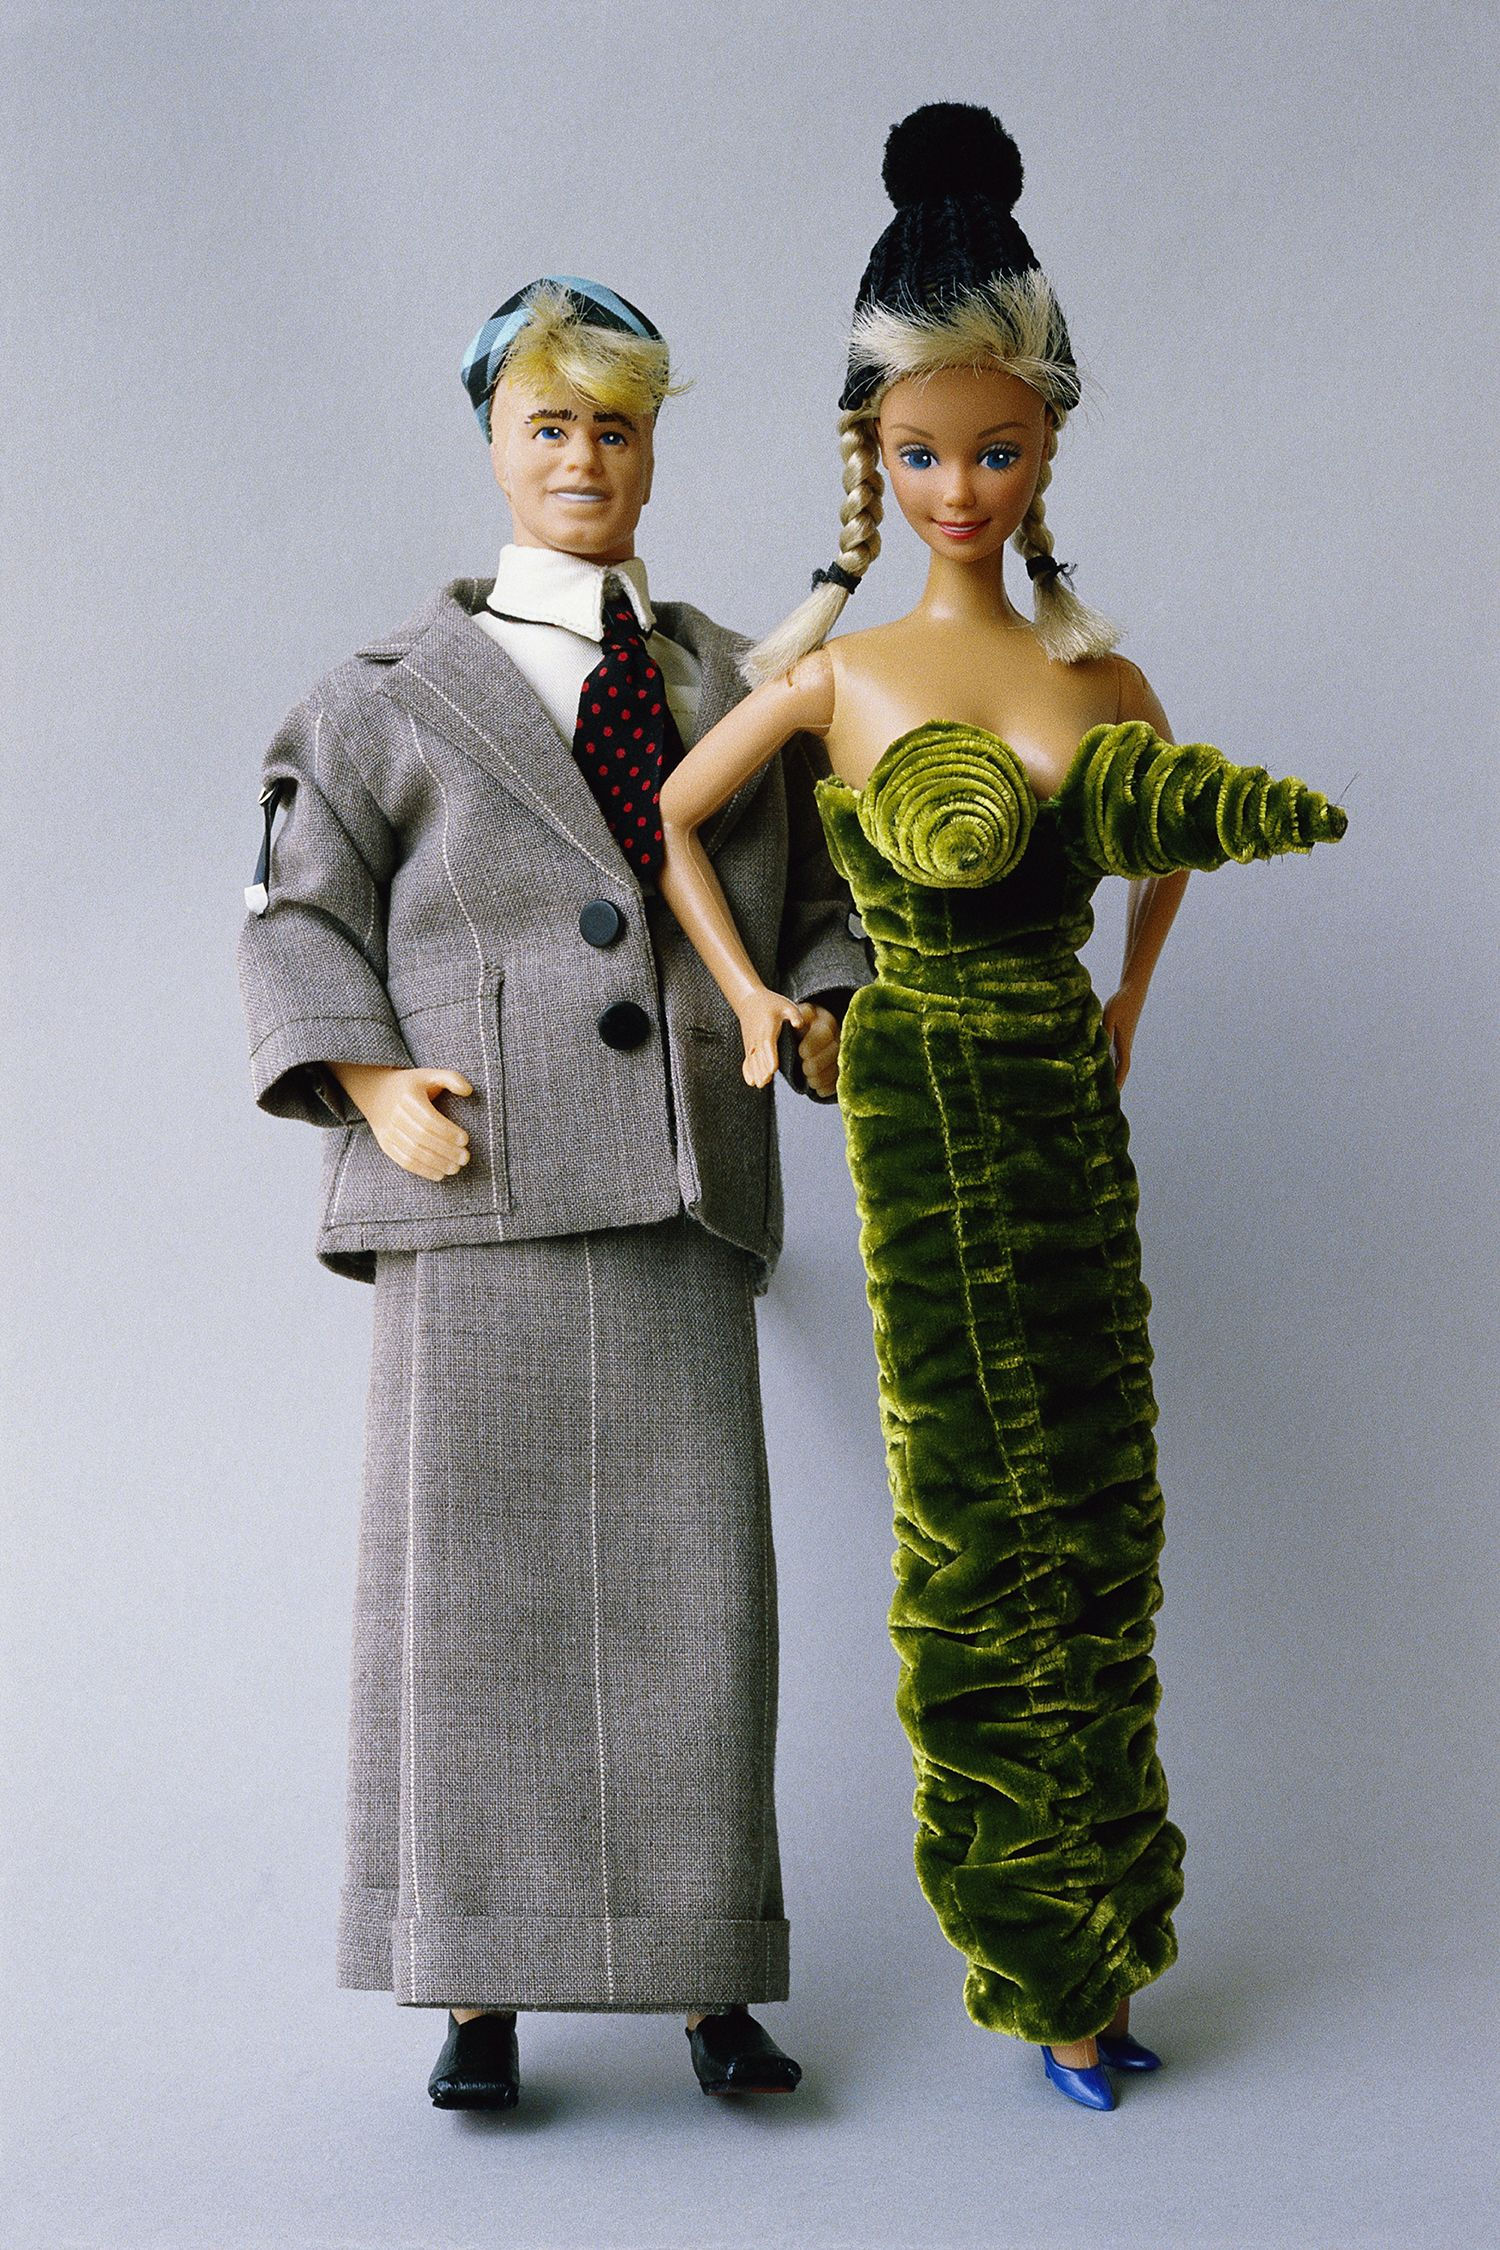 Barbie and Ken in Jean-Paul Gaultier Outfits